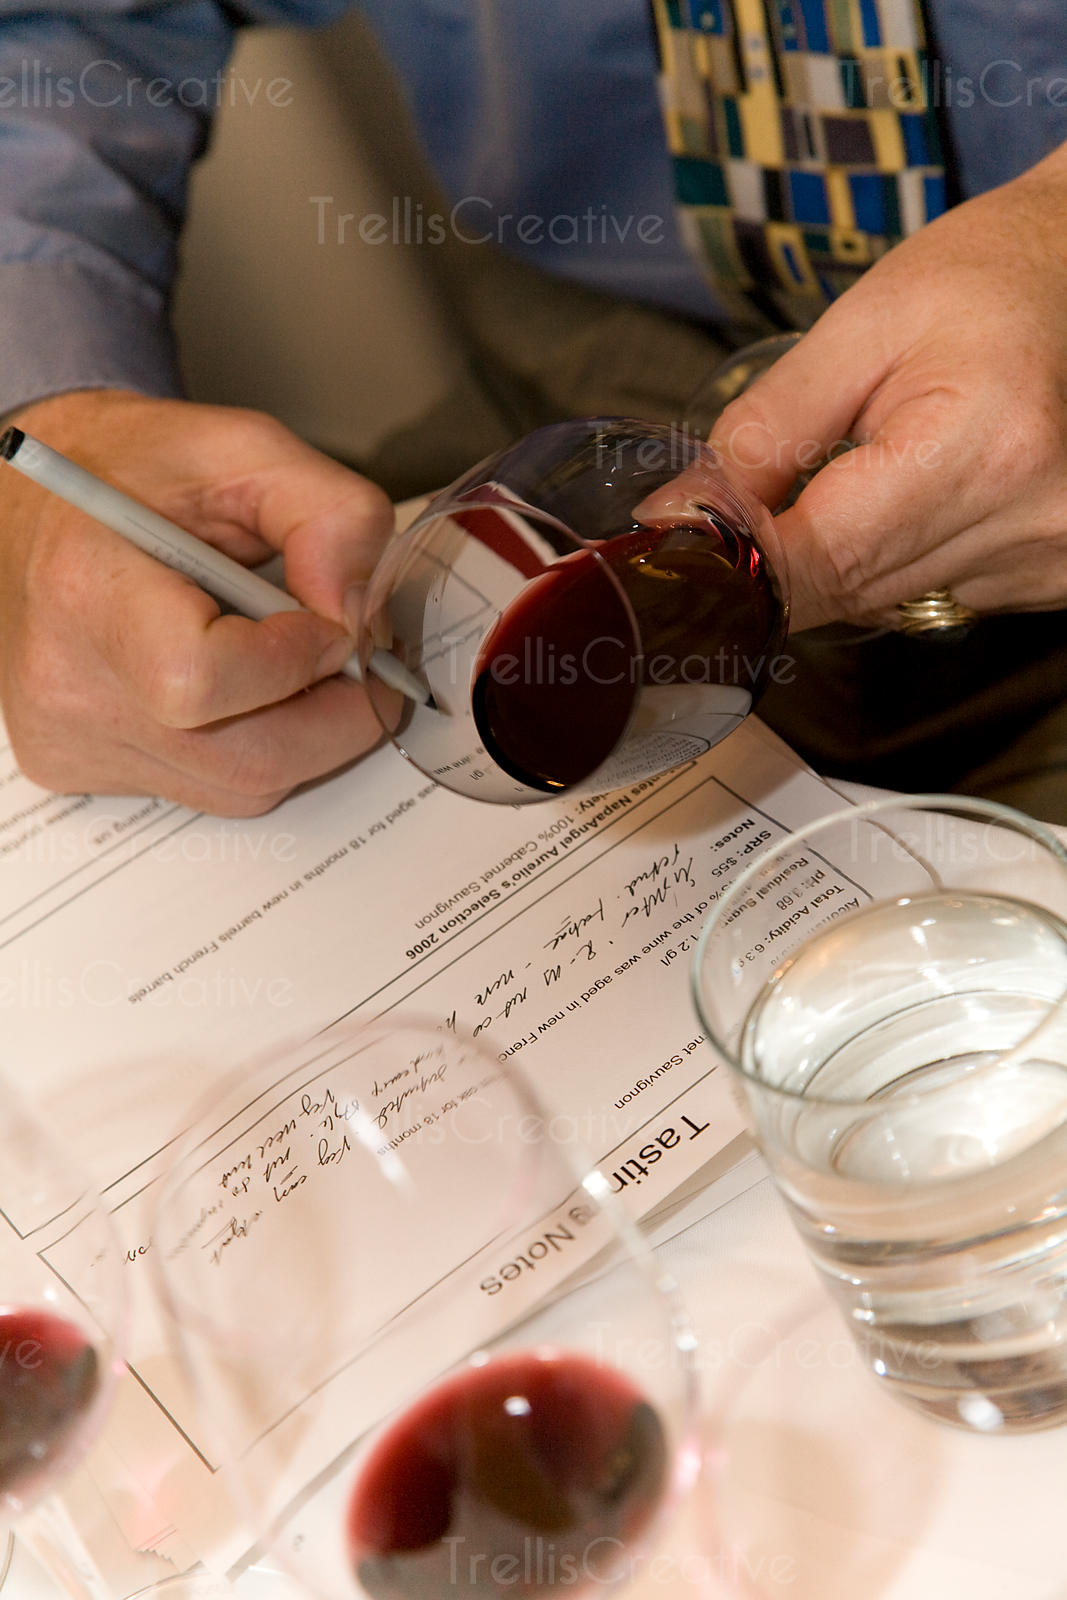 Examining red wine color and clarity and taking notes